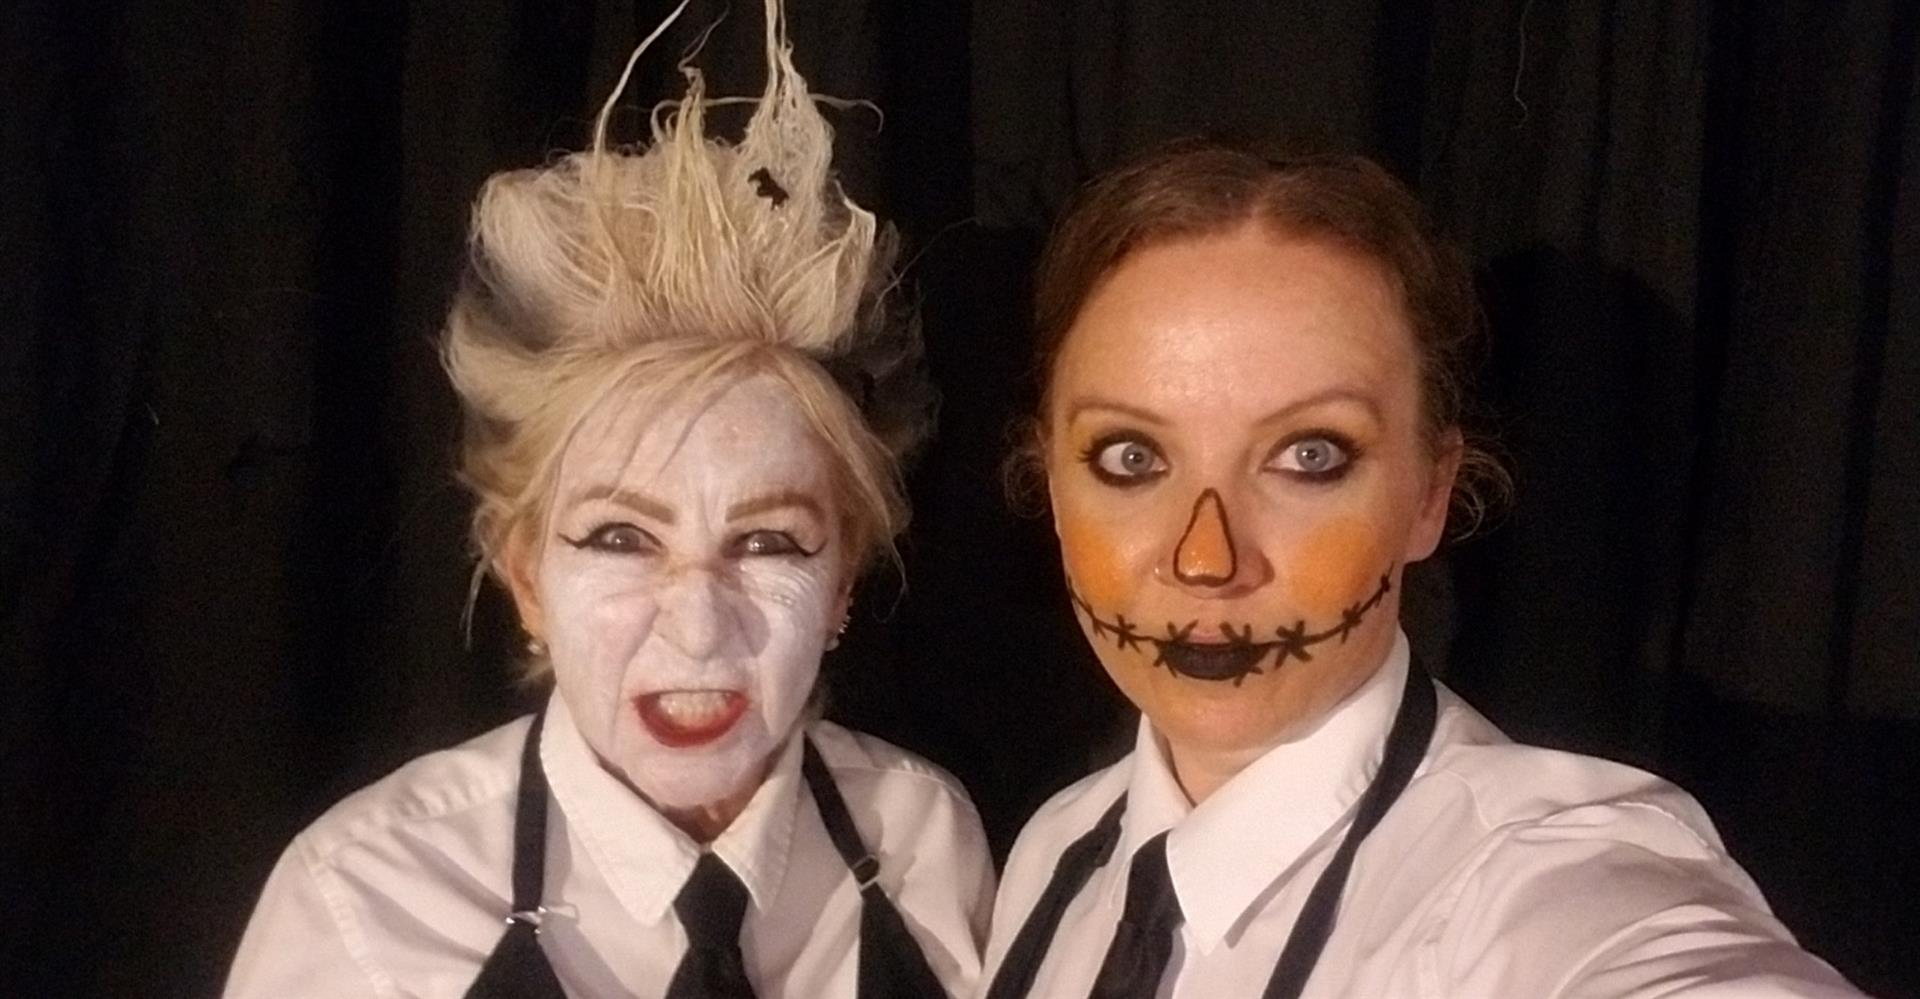 Two waitors dressed up in halloween facepaint